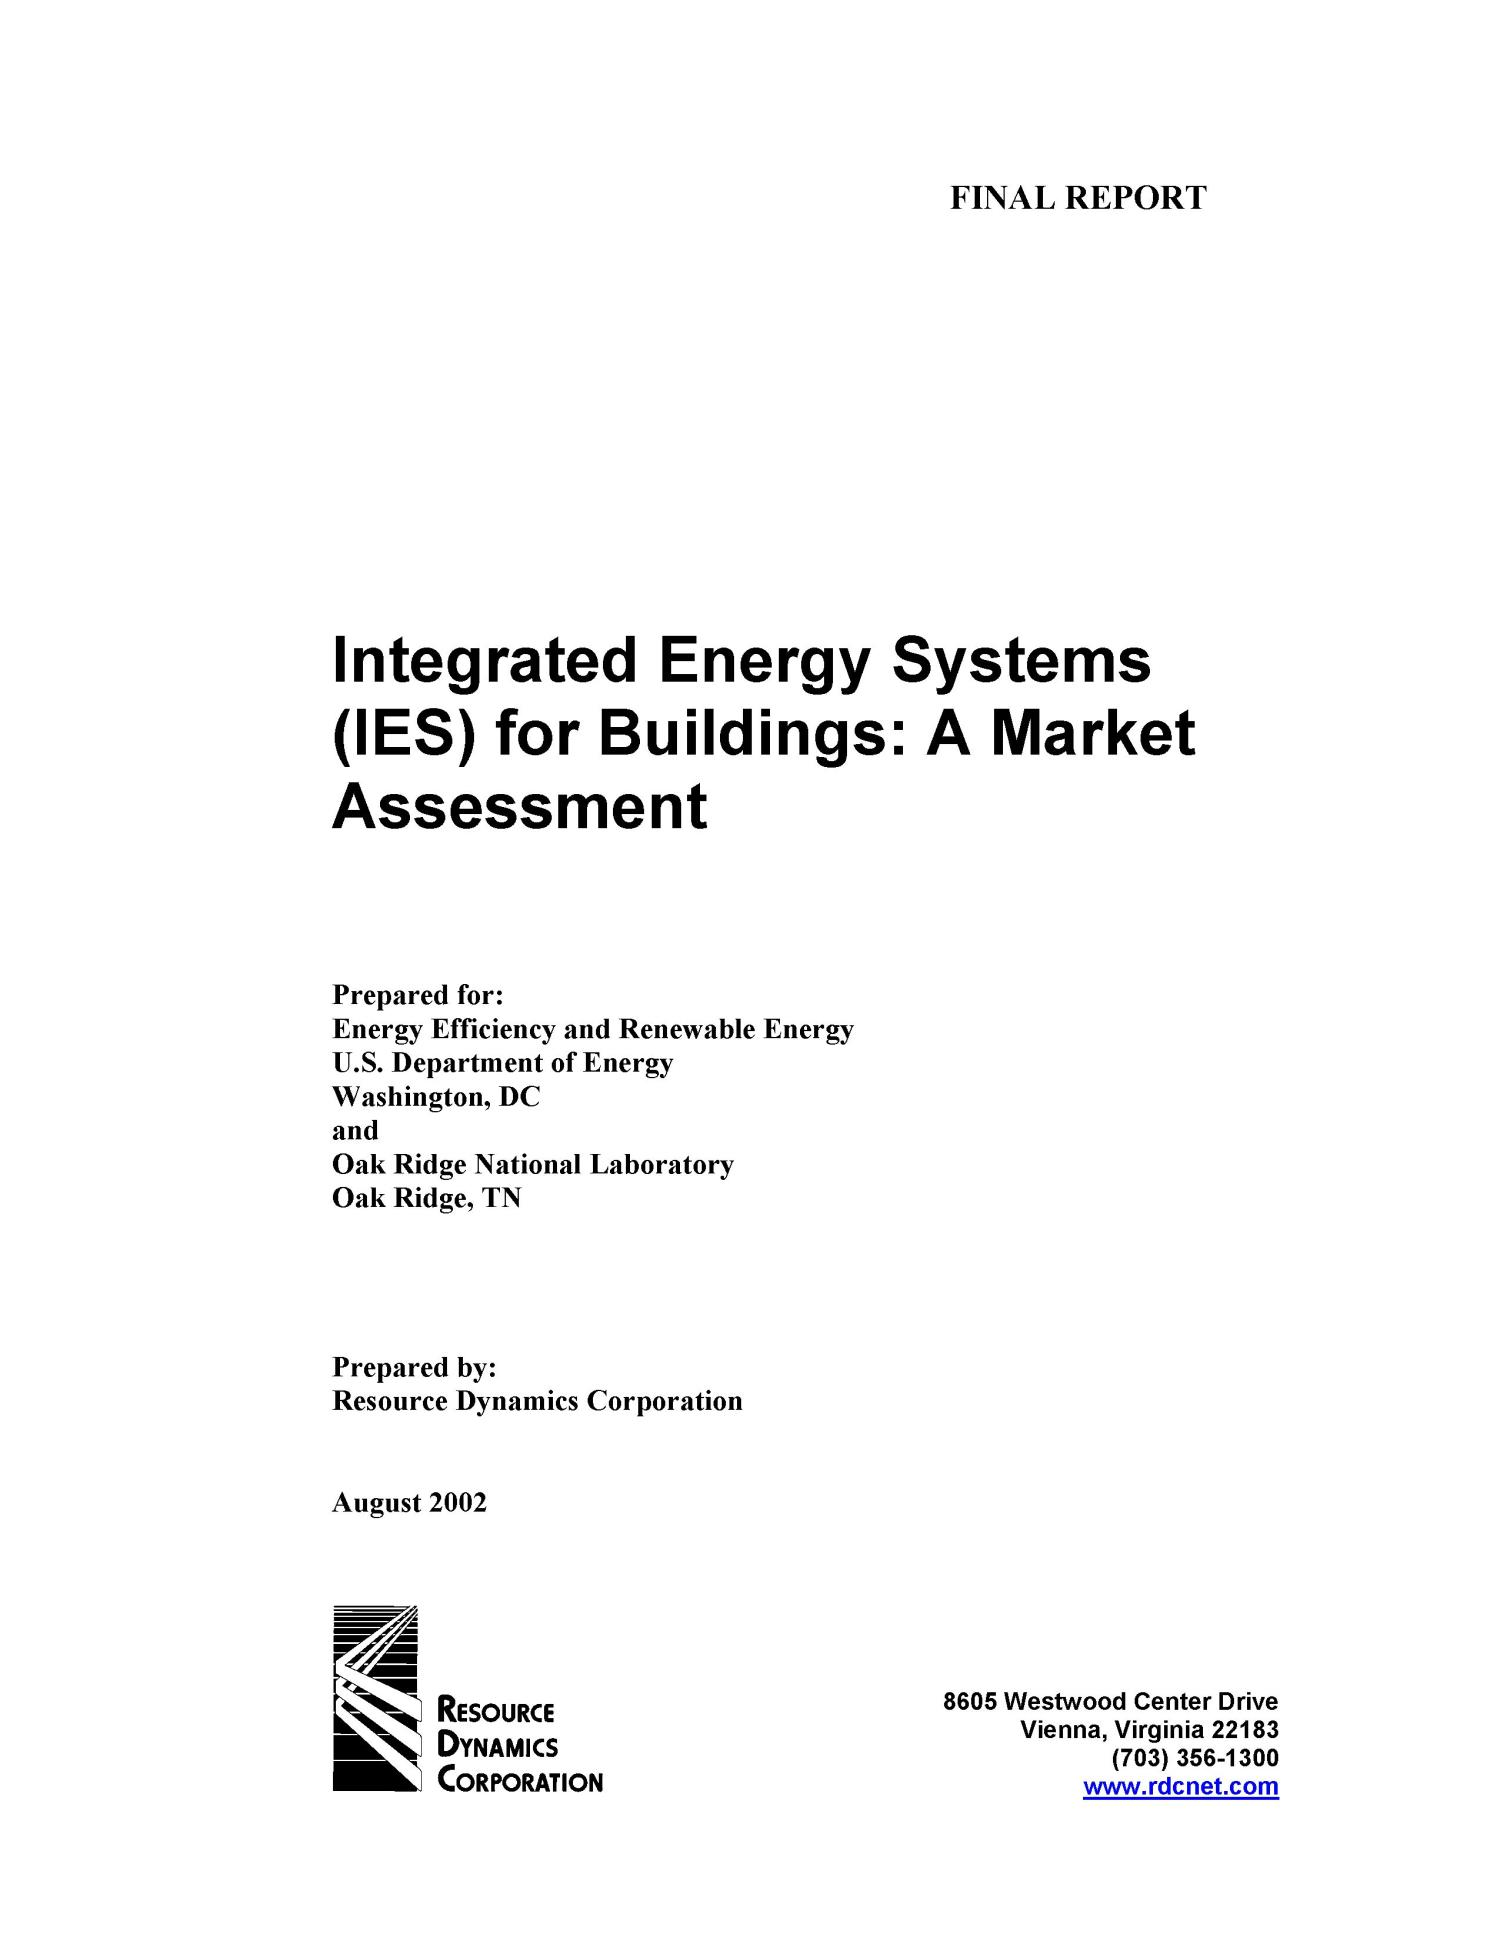 Integrated Energy Systems (IES) for Buildings: A Market Assessment                                                                                                      [Sequence #]: 1 of 75